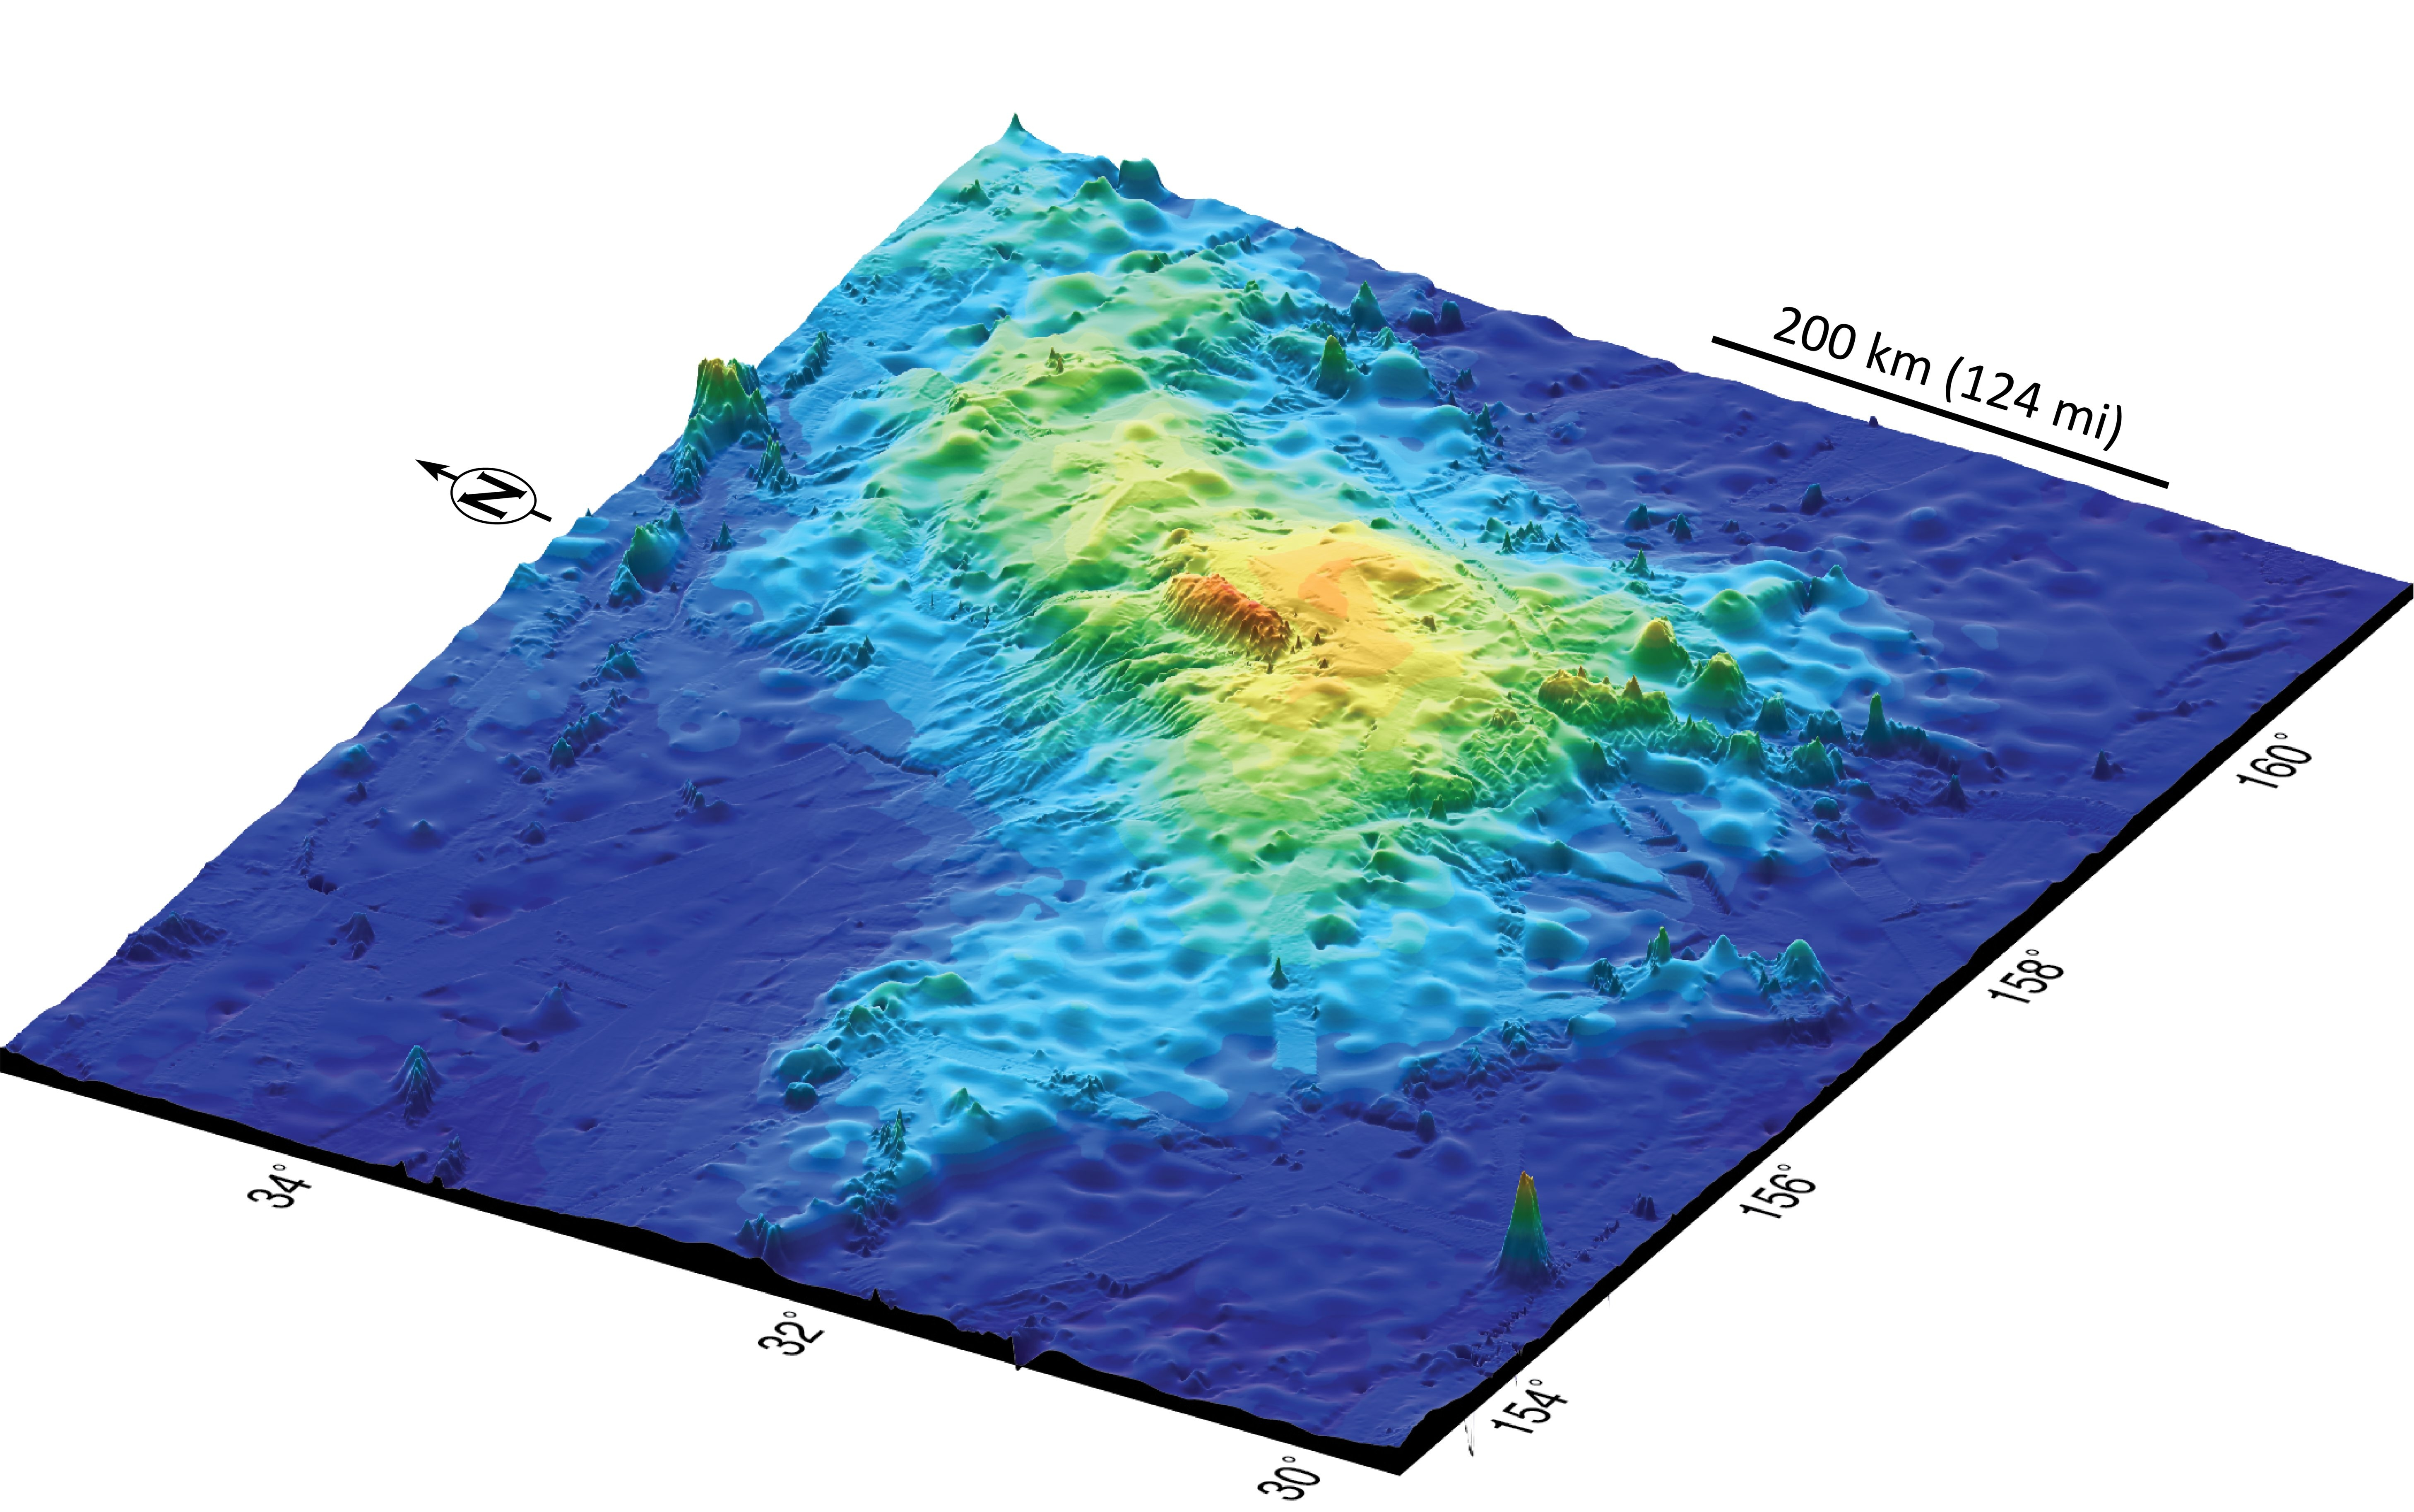 This is a 3-D plot of the topography of Tamu Massif, which likes about a thousand miles east of Japan and has been extinct for millions of years.